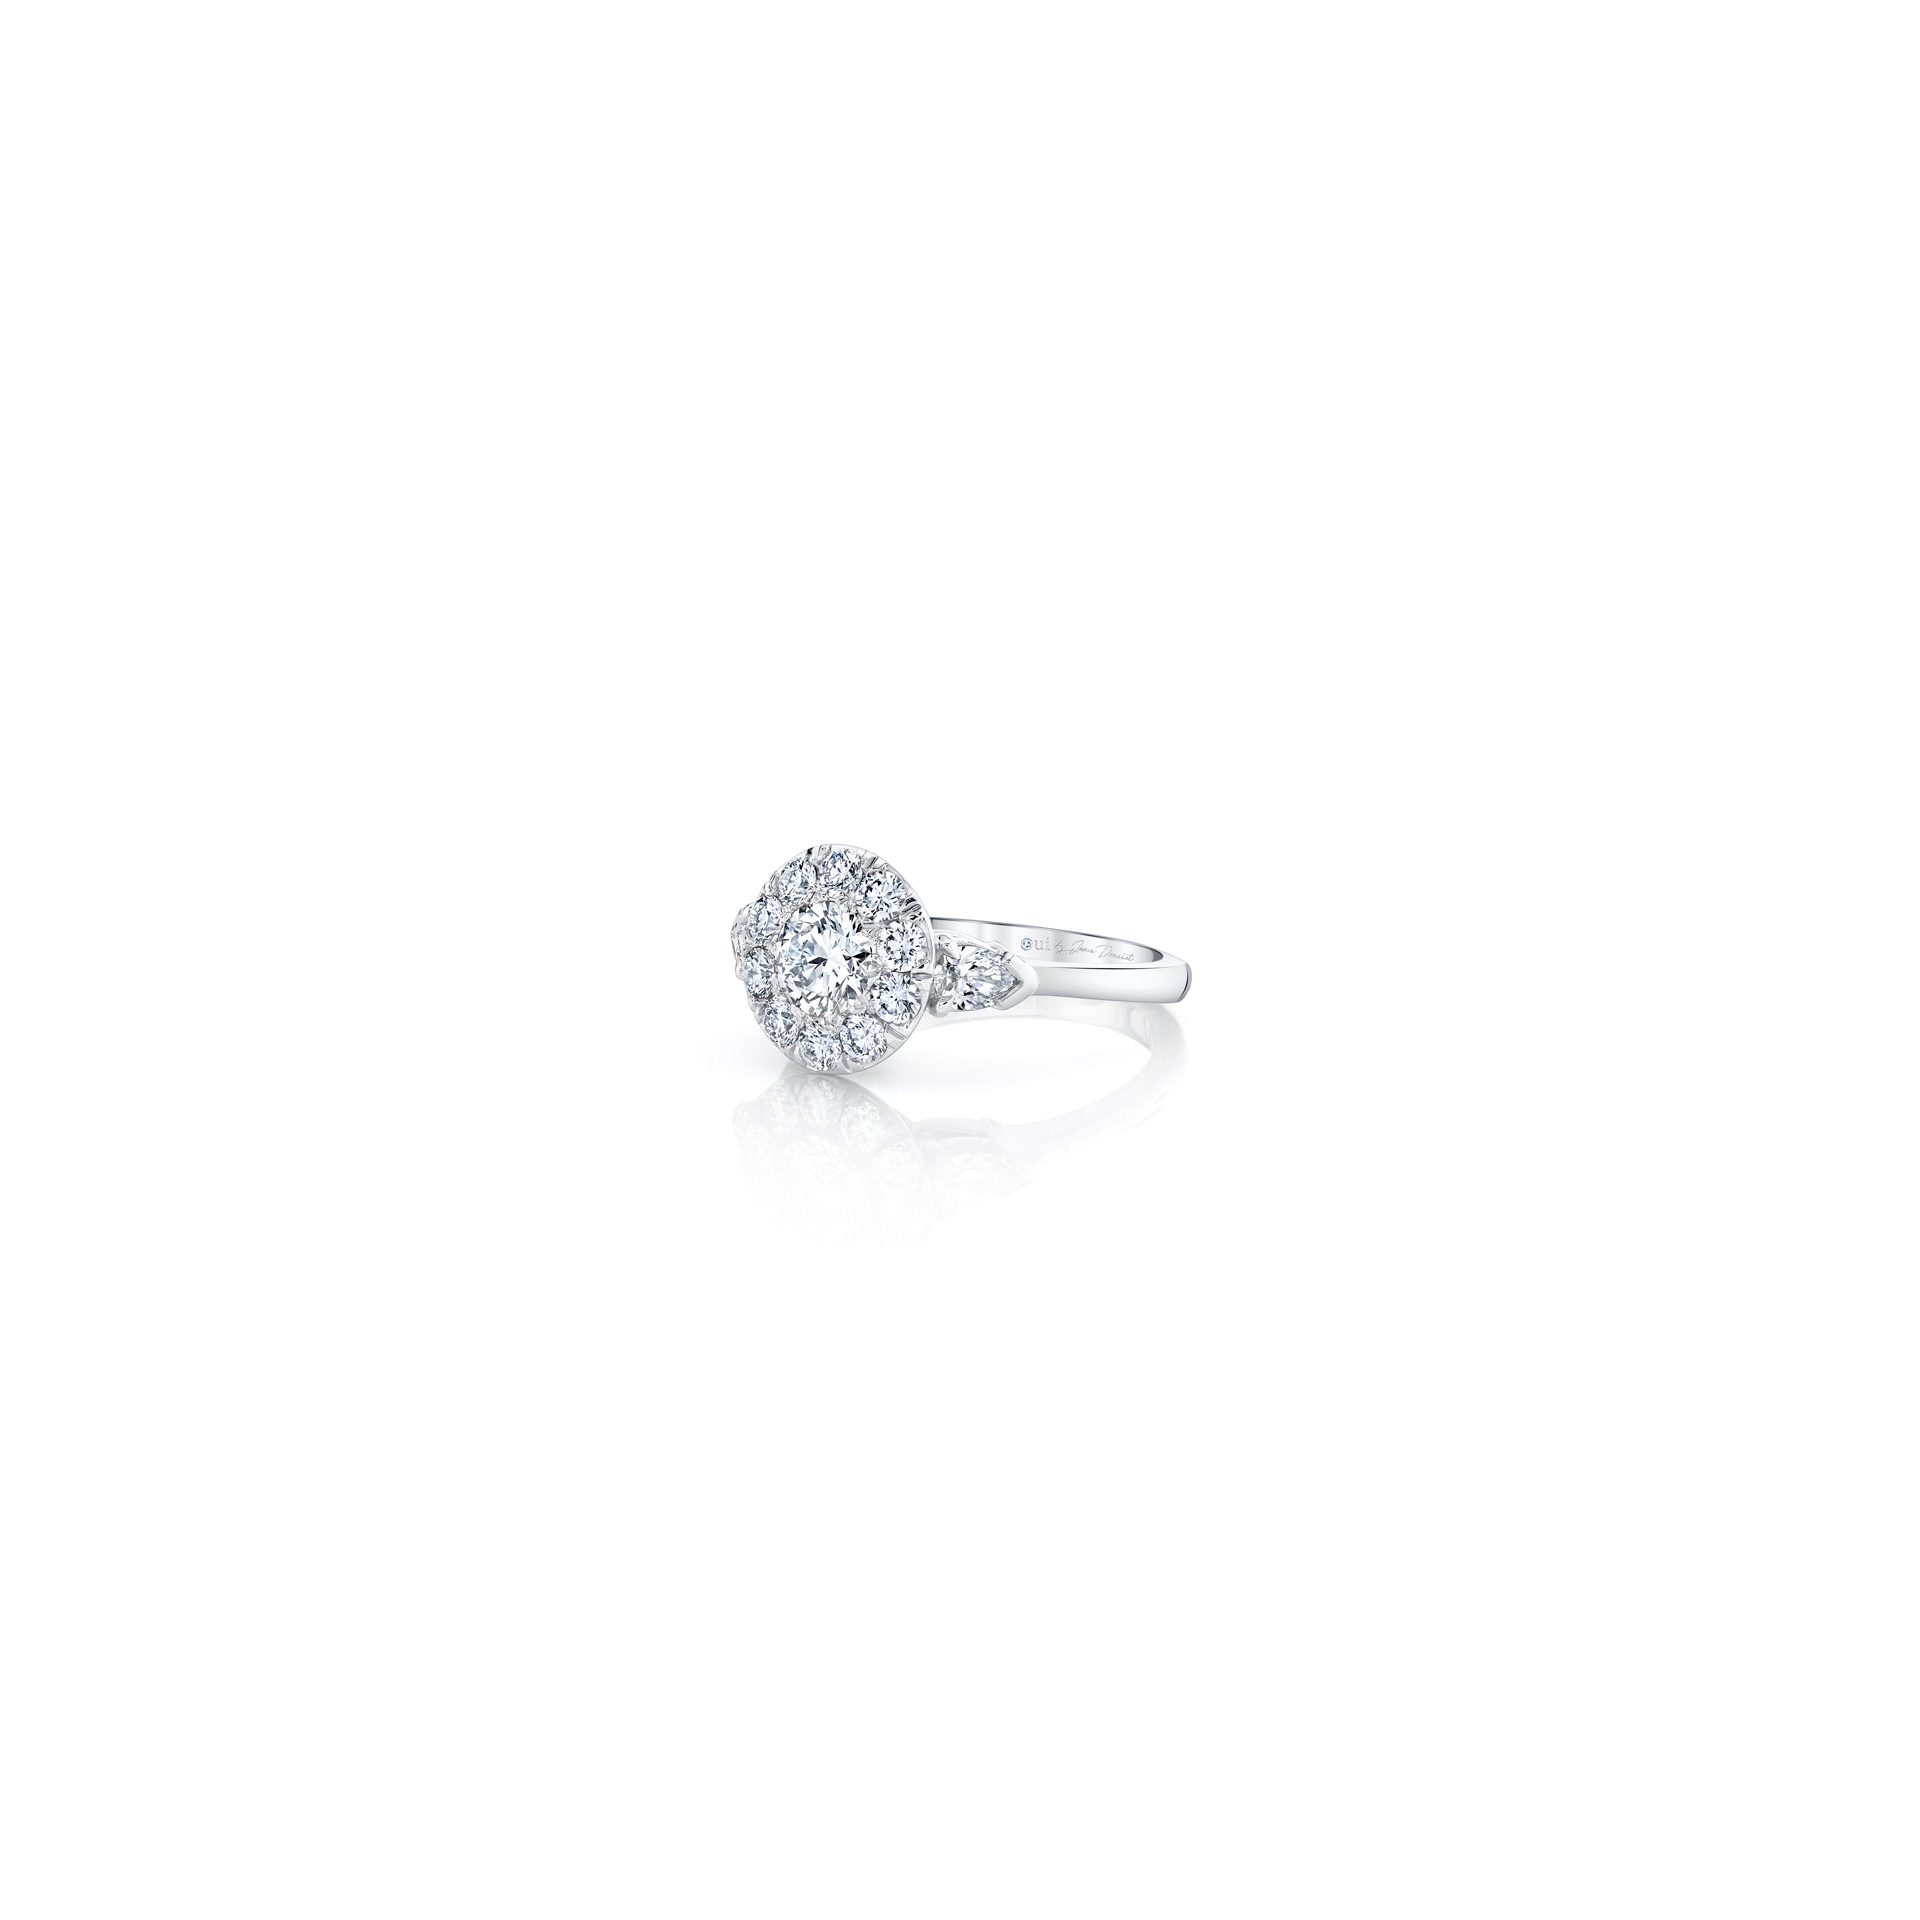 Clementine Round Brilliant Seamless Solitaire™ Three Stone Engagement Ring with pear-shaped diamond side stones in 18k White Gold Side View by Oui by Jean Dousset